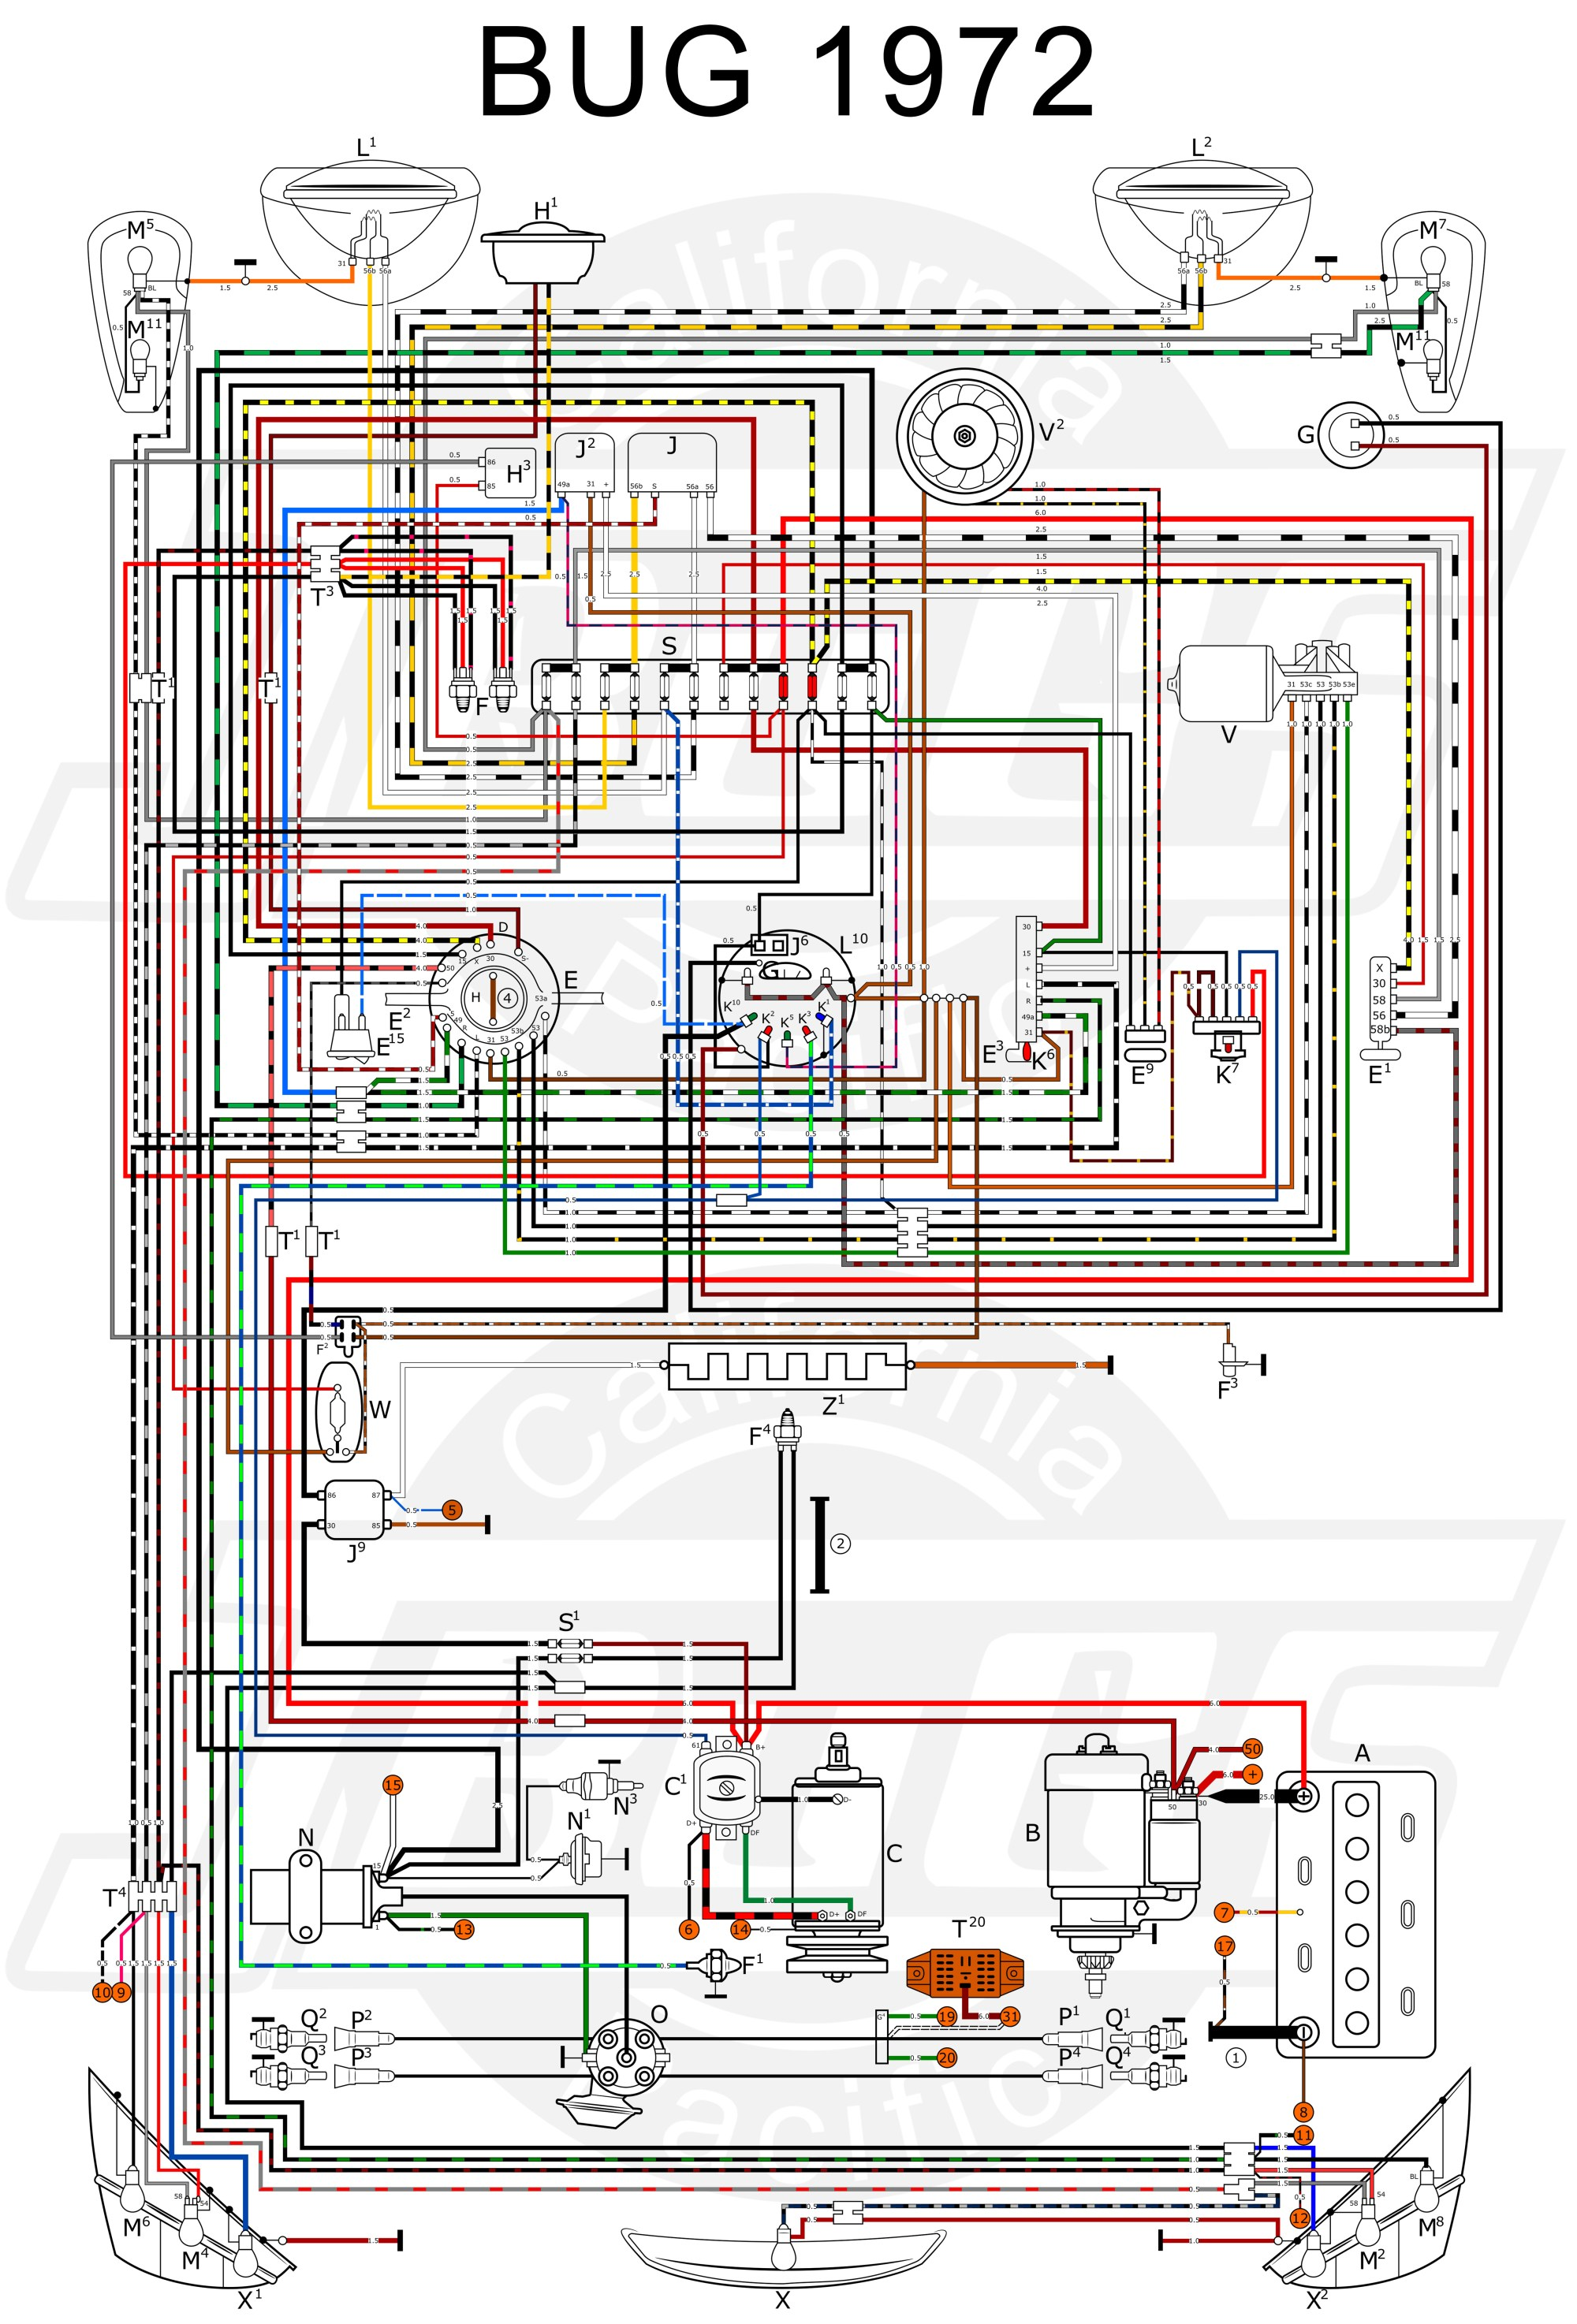 hight resolution of 1999 passat exhaust diagram trusted wiring diagrams u2022 rh radkan co 2001 passat 1999 vw passat